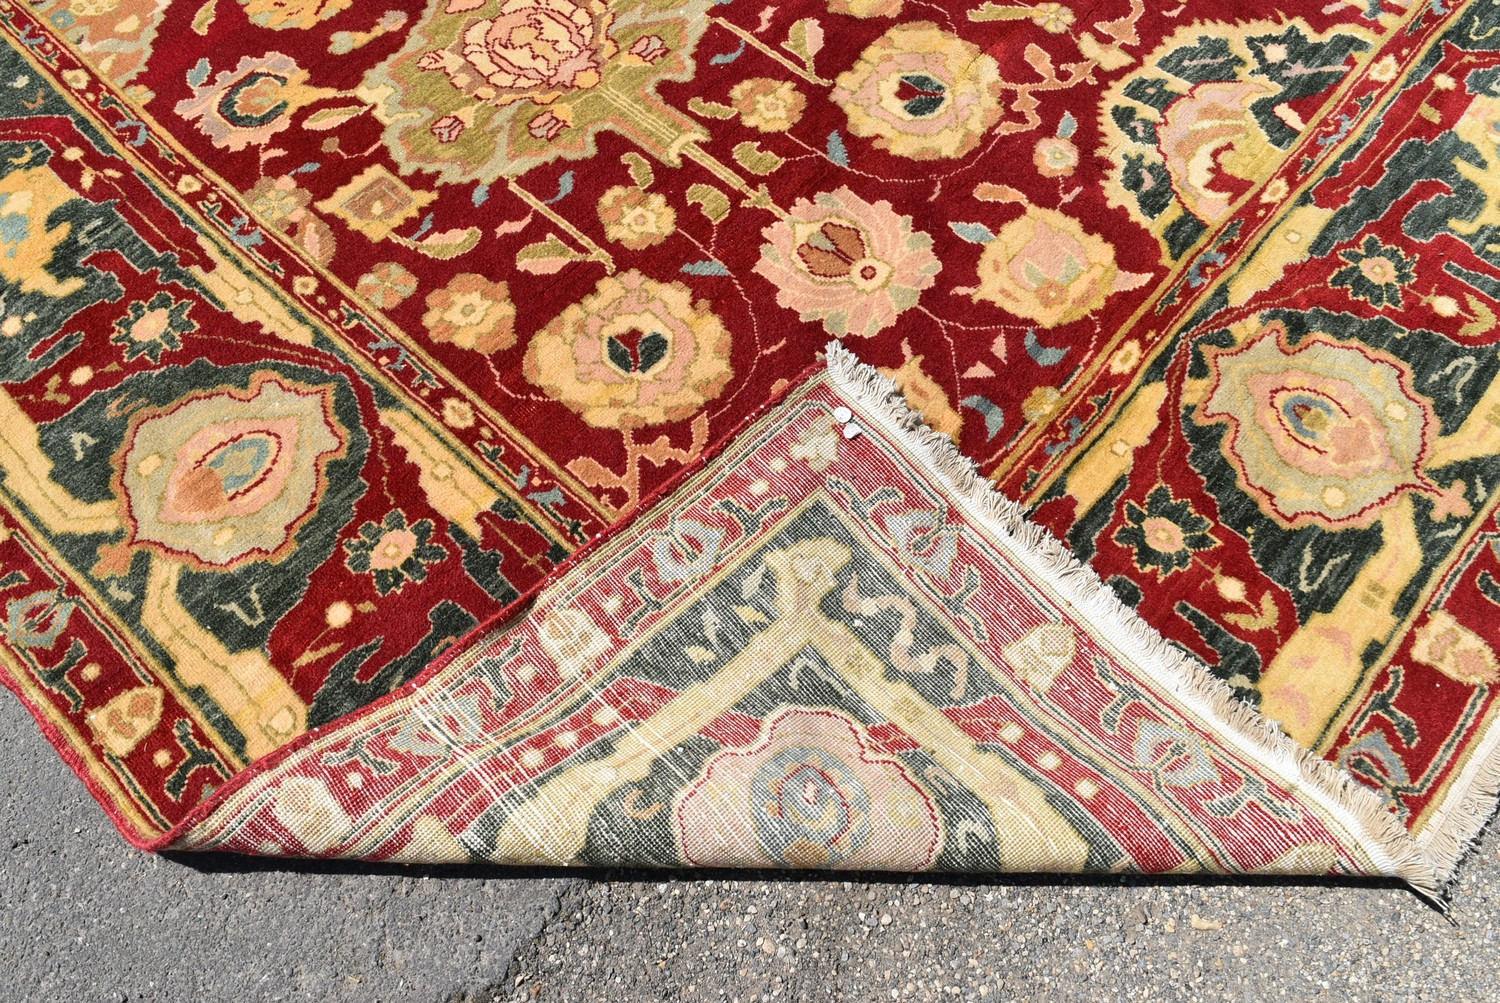 A fine large Agra carpet with all over repeating scrolling palmette and lotus flower decoration on a - Image 4 of 4